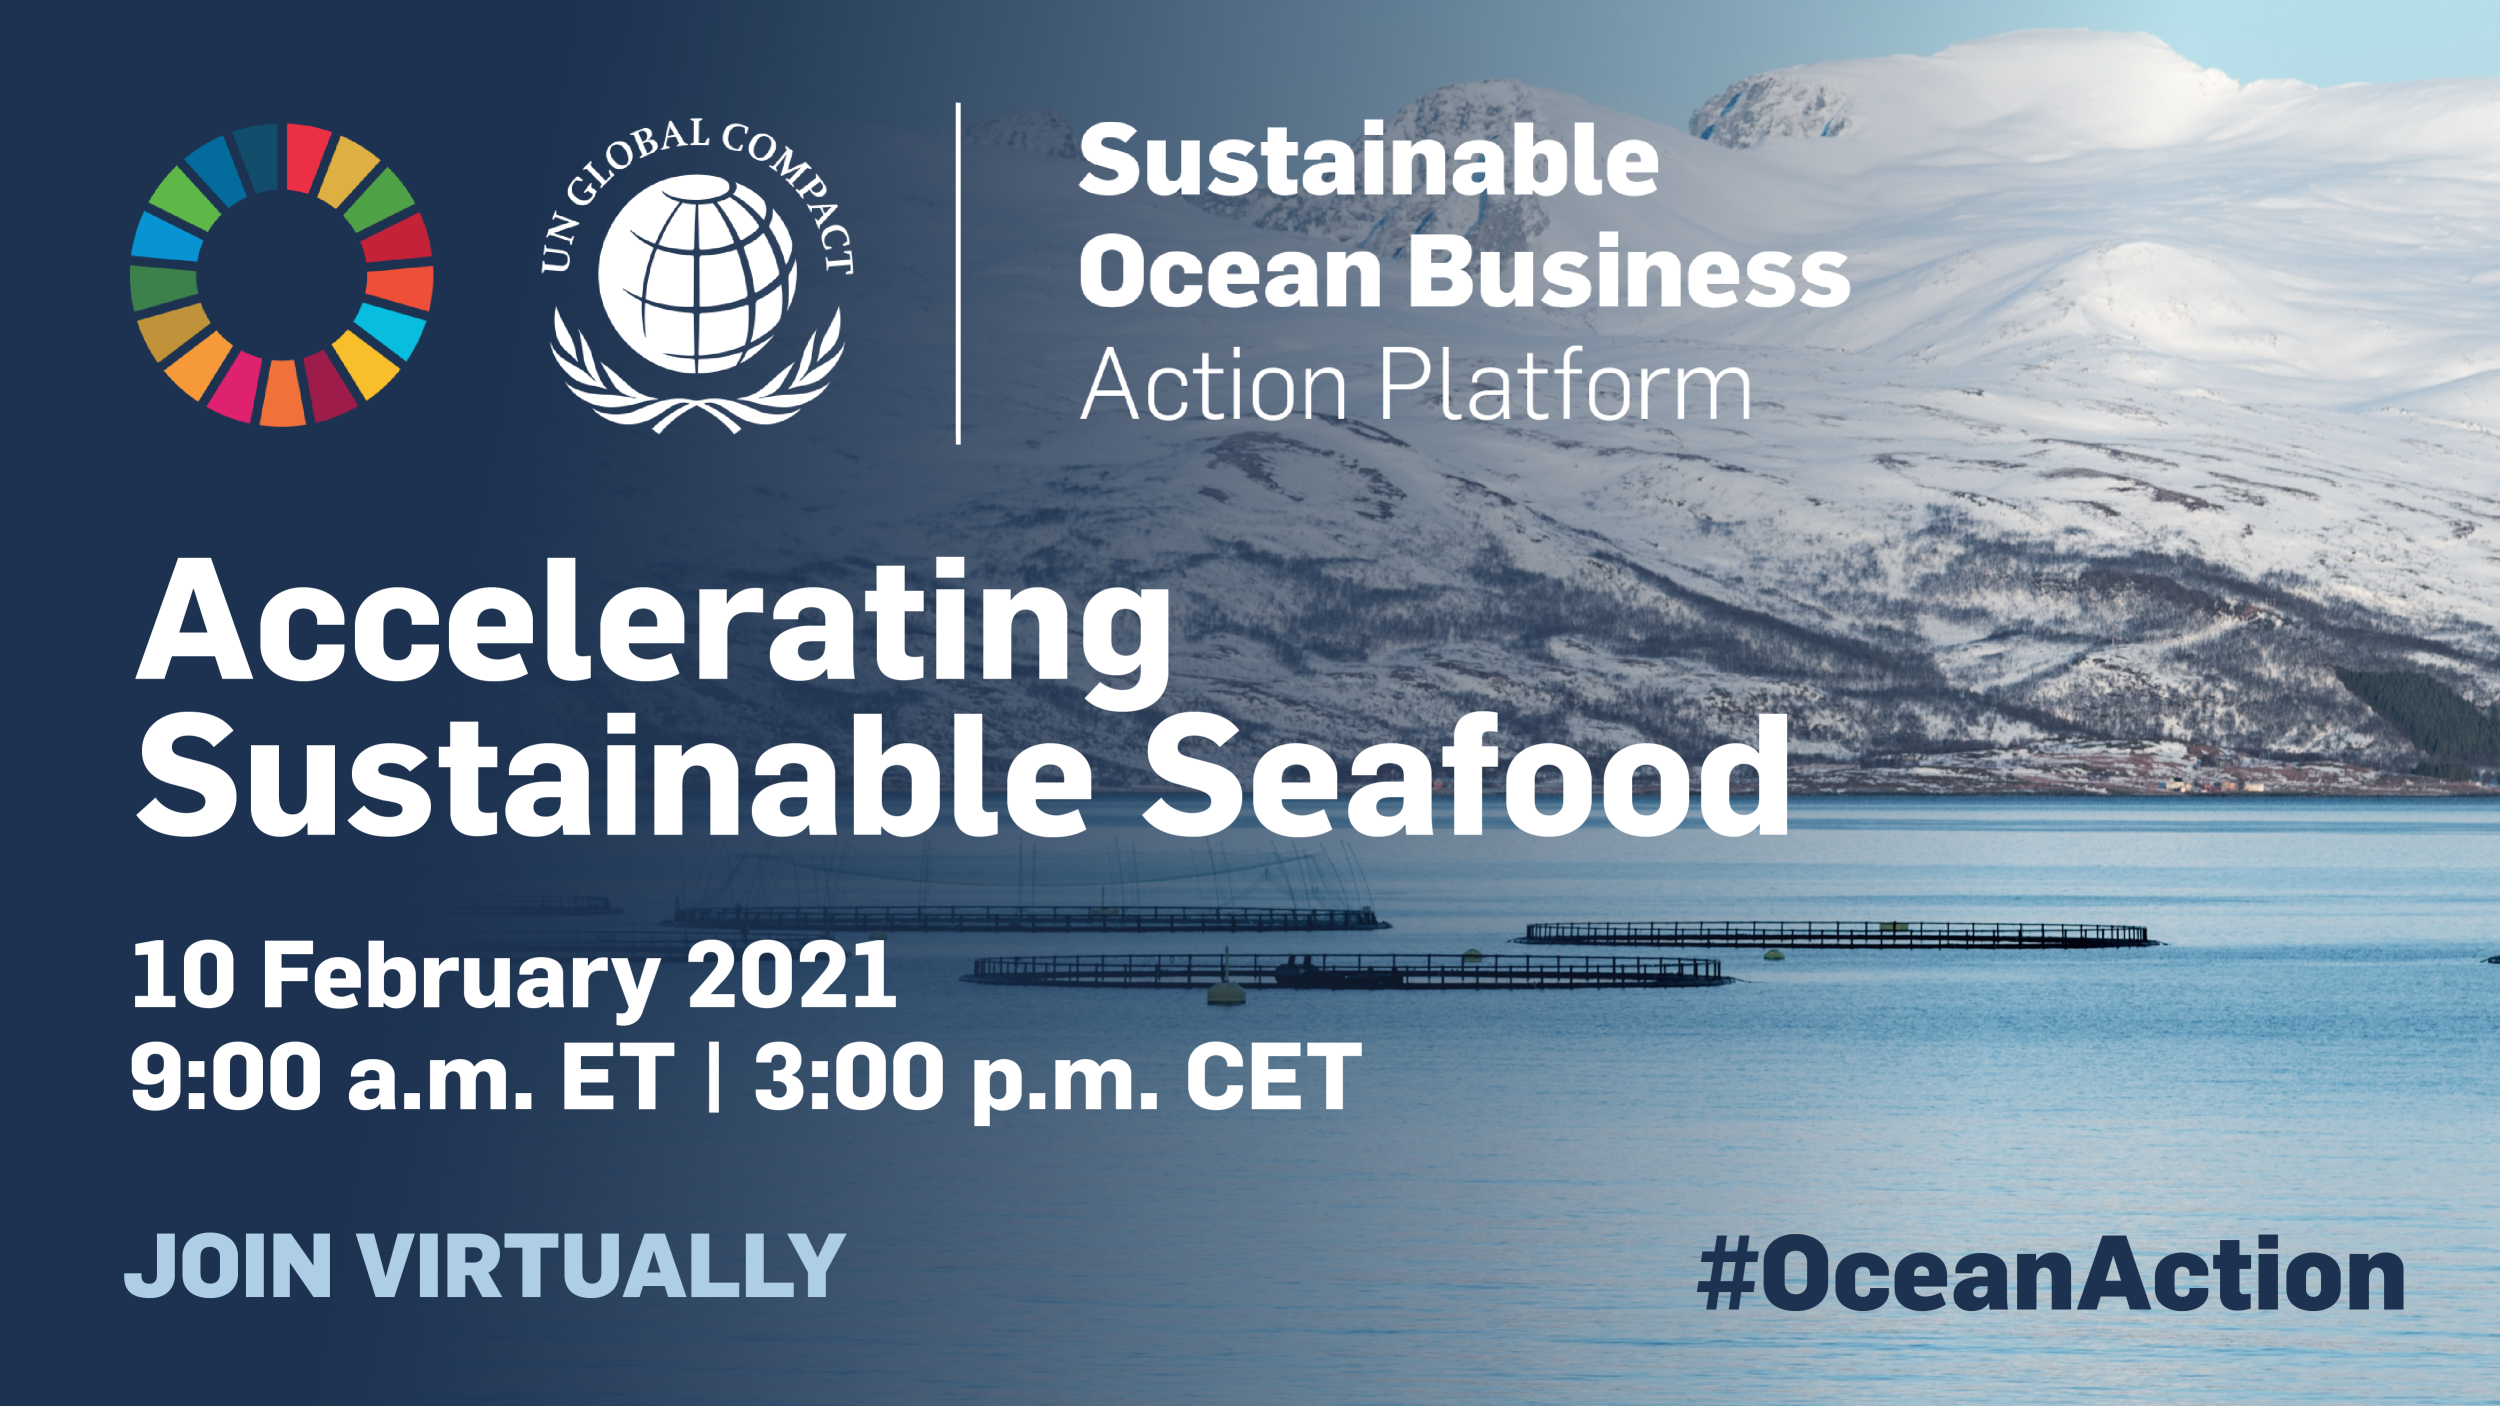 Accelerating Seafood Sustainability